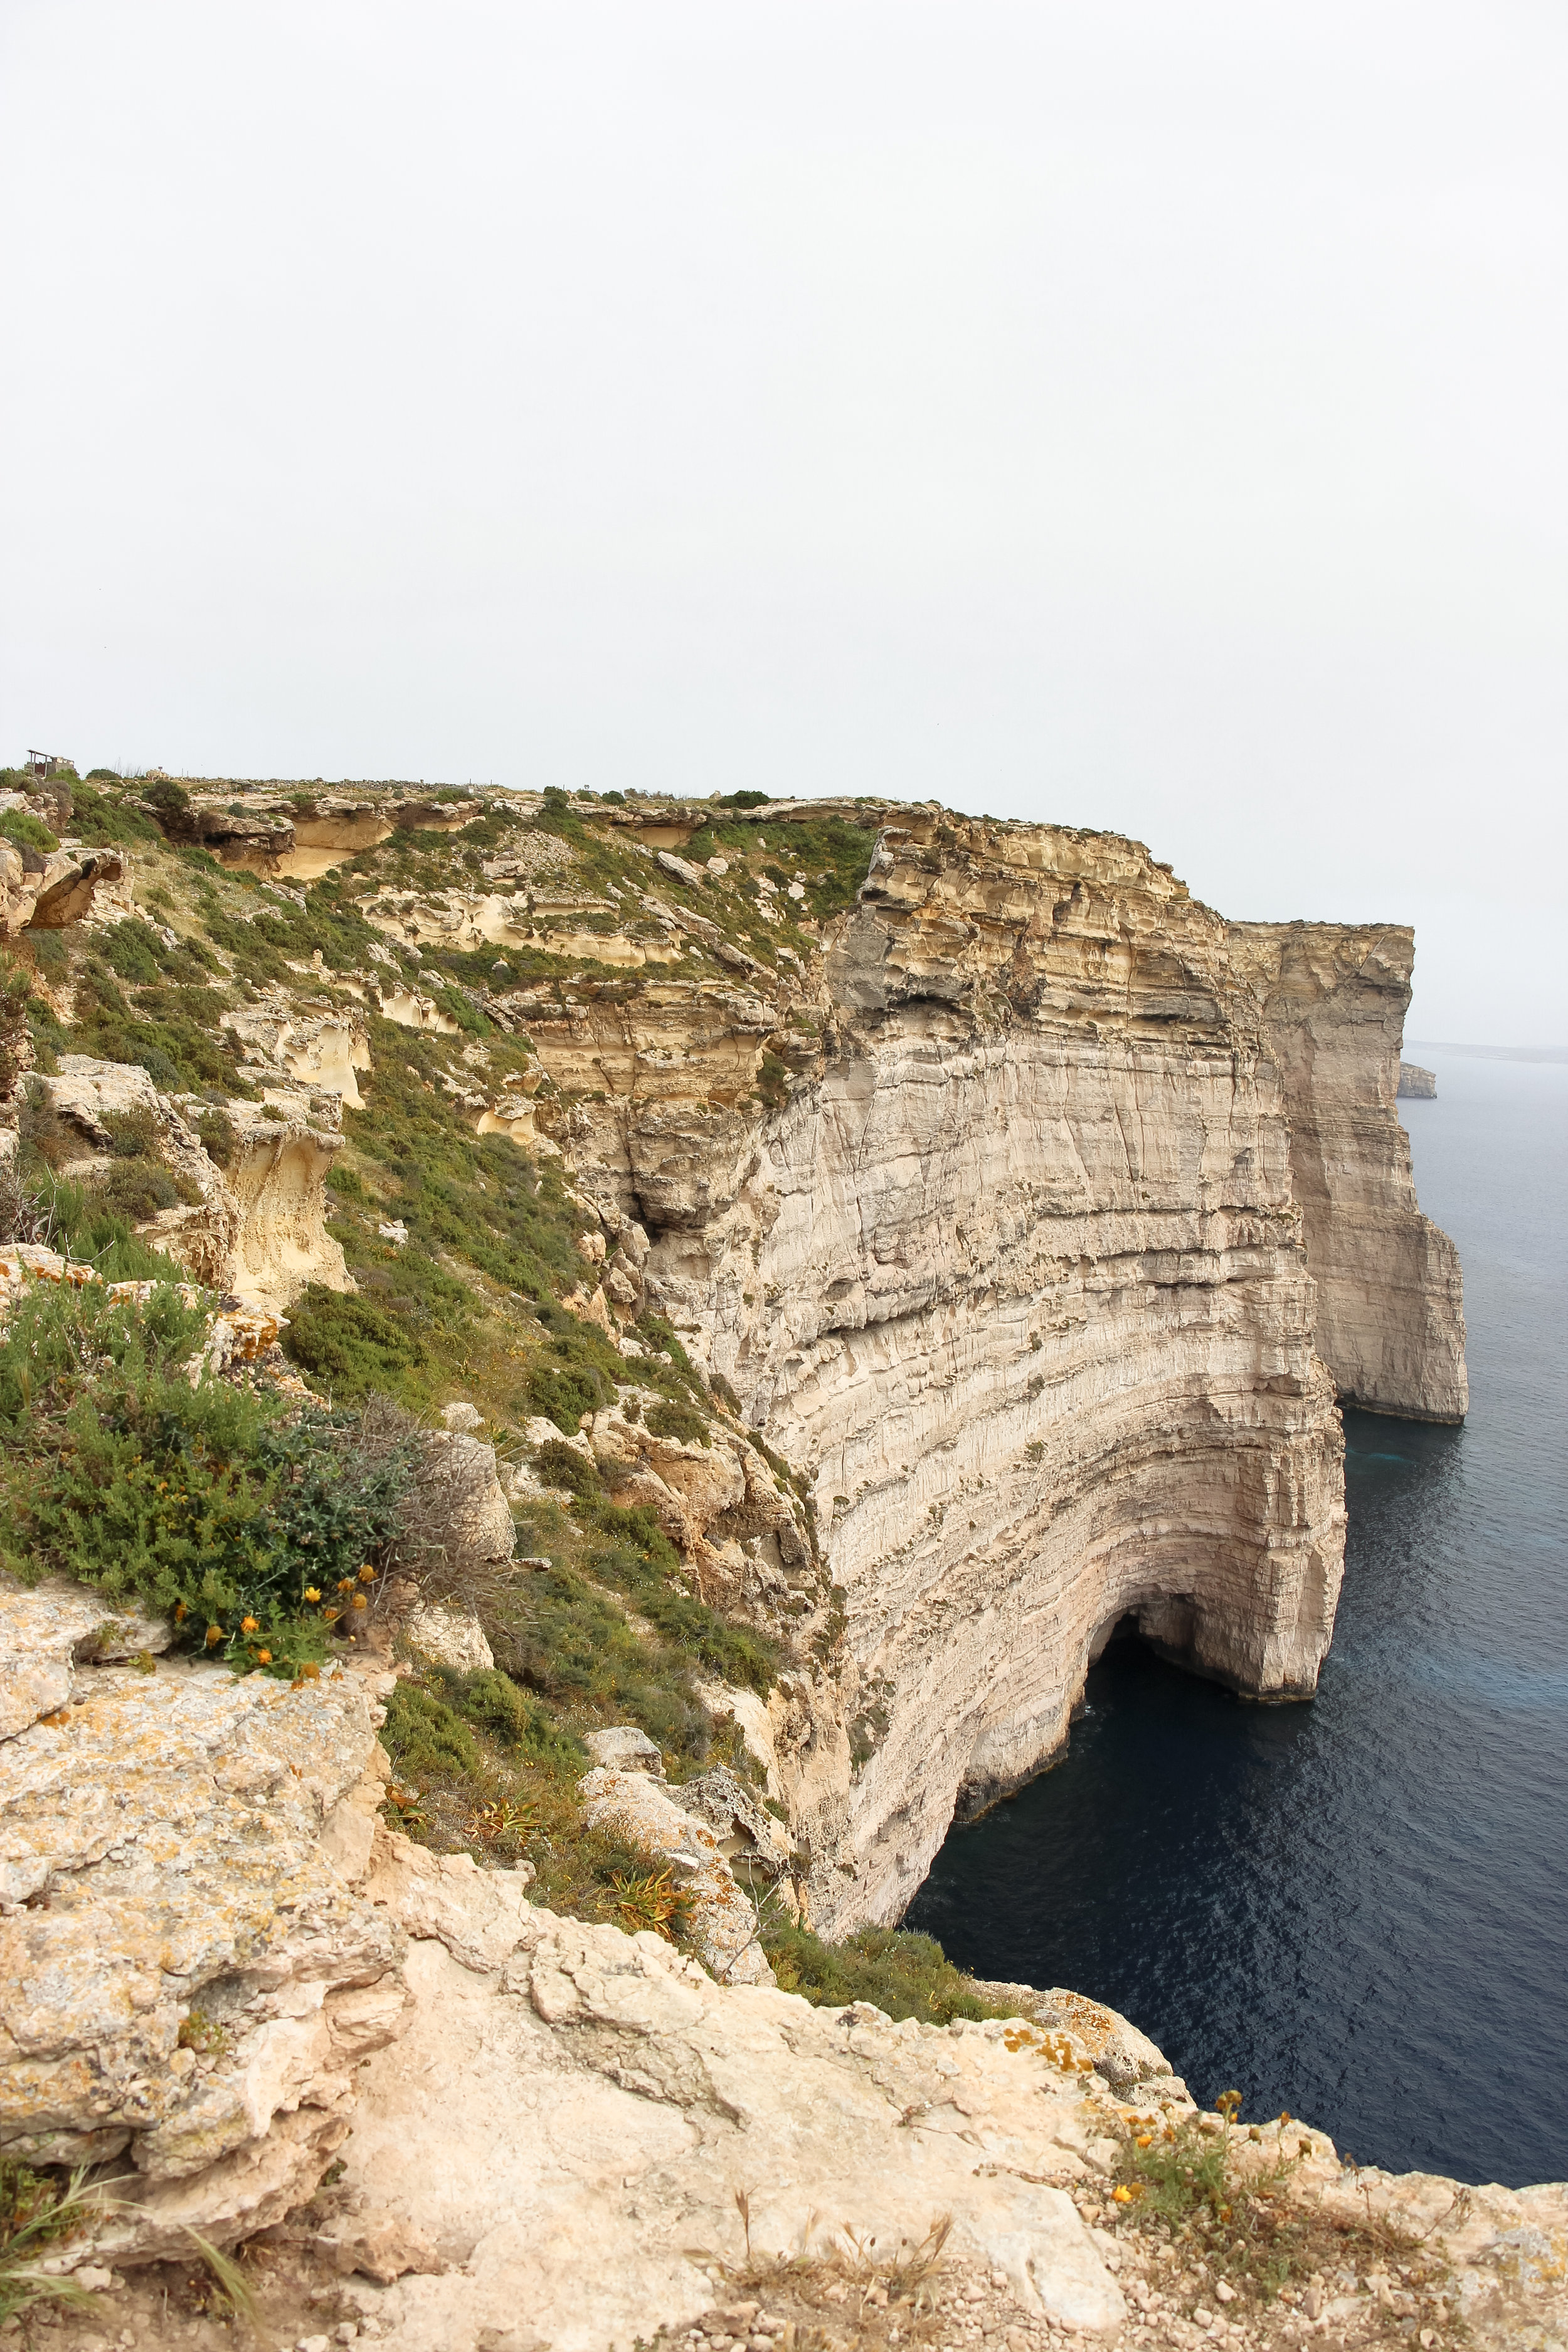 Sanap Cliffs | Mediterranean Coast | Nature | LAndscape - Thinking About Appreciation For Quality In Malta | Gozo, Malta, Europe | DoLessGetMoreDone.com | - iPhone Minimal Travel Documentary Photography - search for Liveability | Sustainability